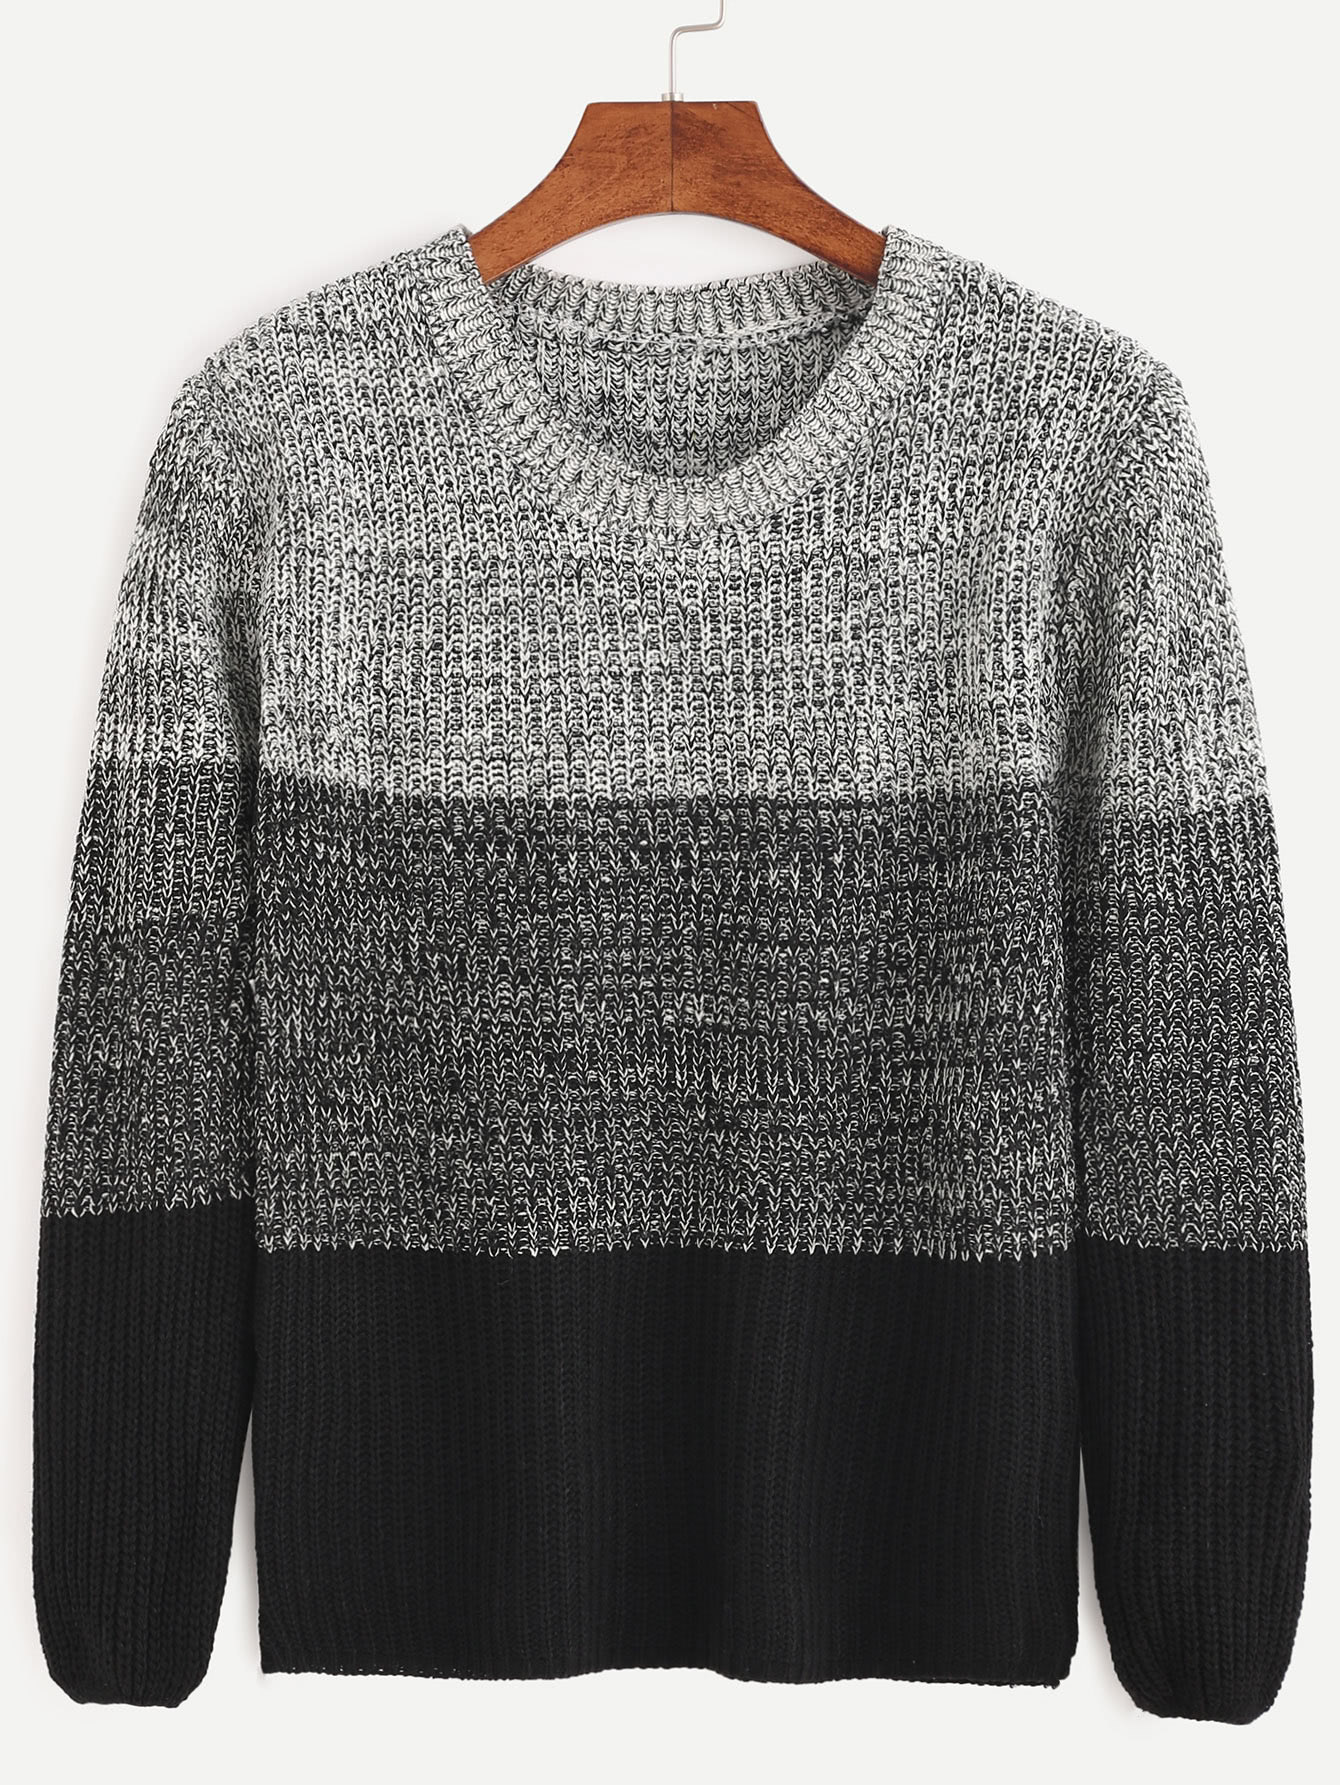 Color Block Fitted Sweater sweater160920101